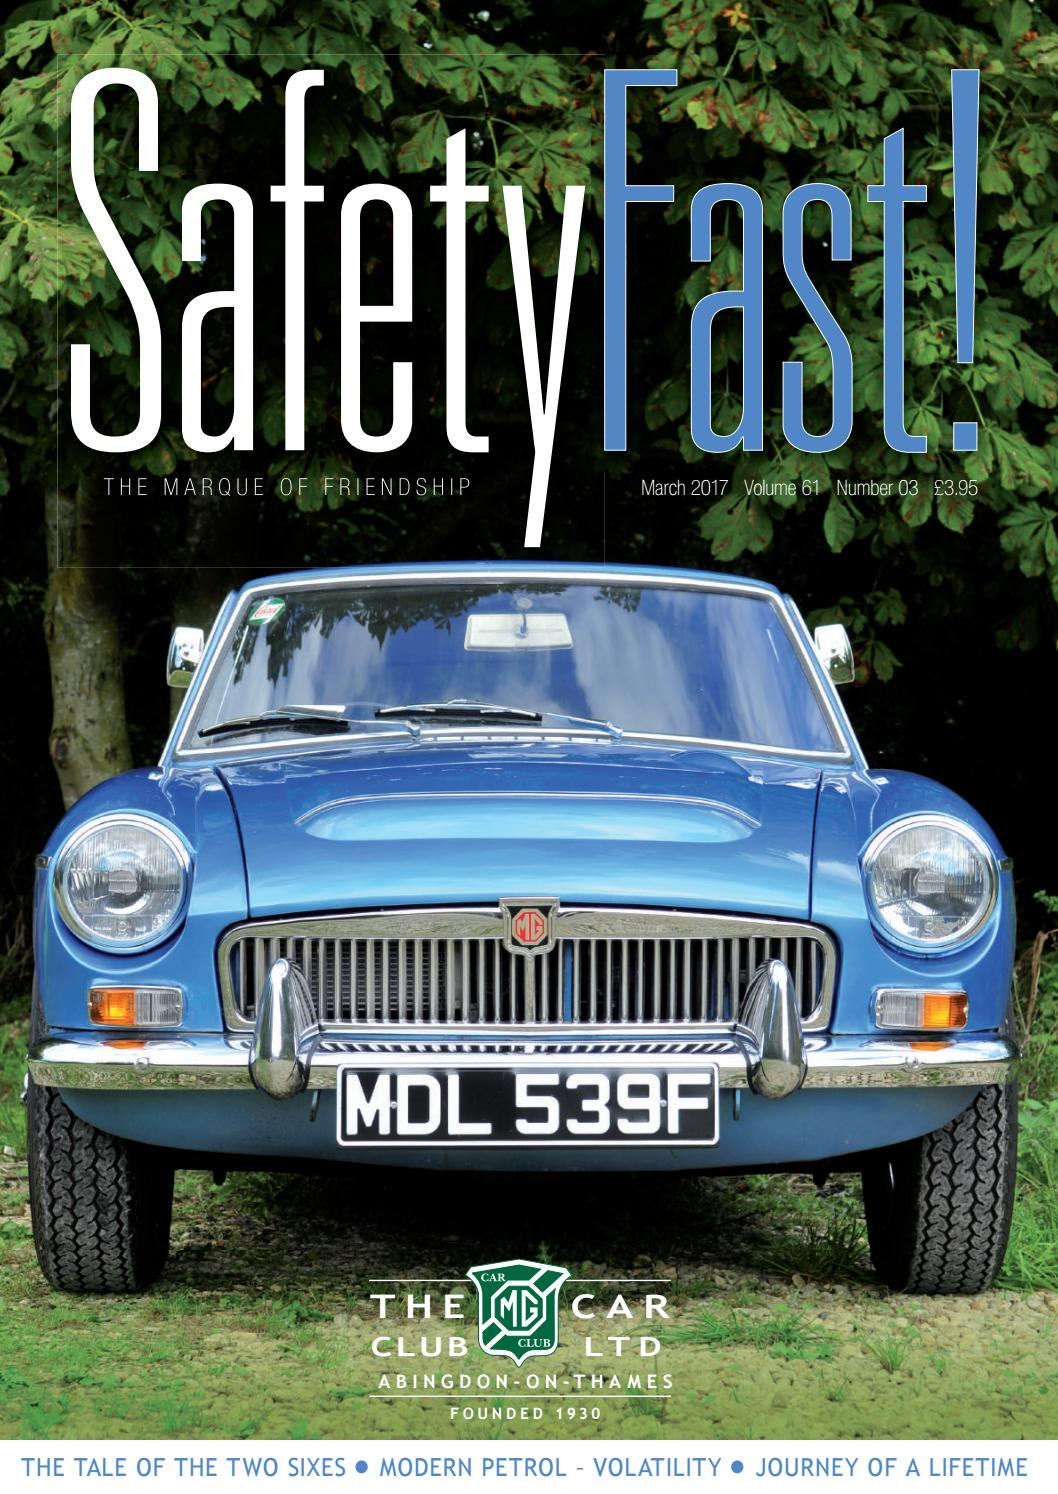 8a45a165977 Safety Fast! March 2017 by MG Car Club - issuu